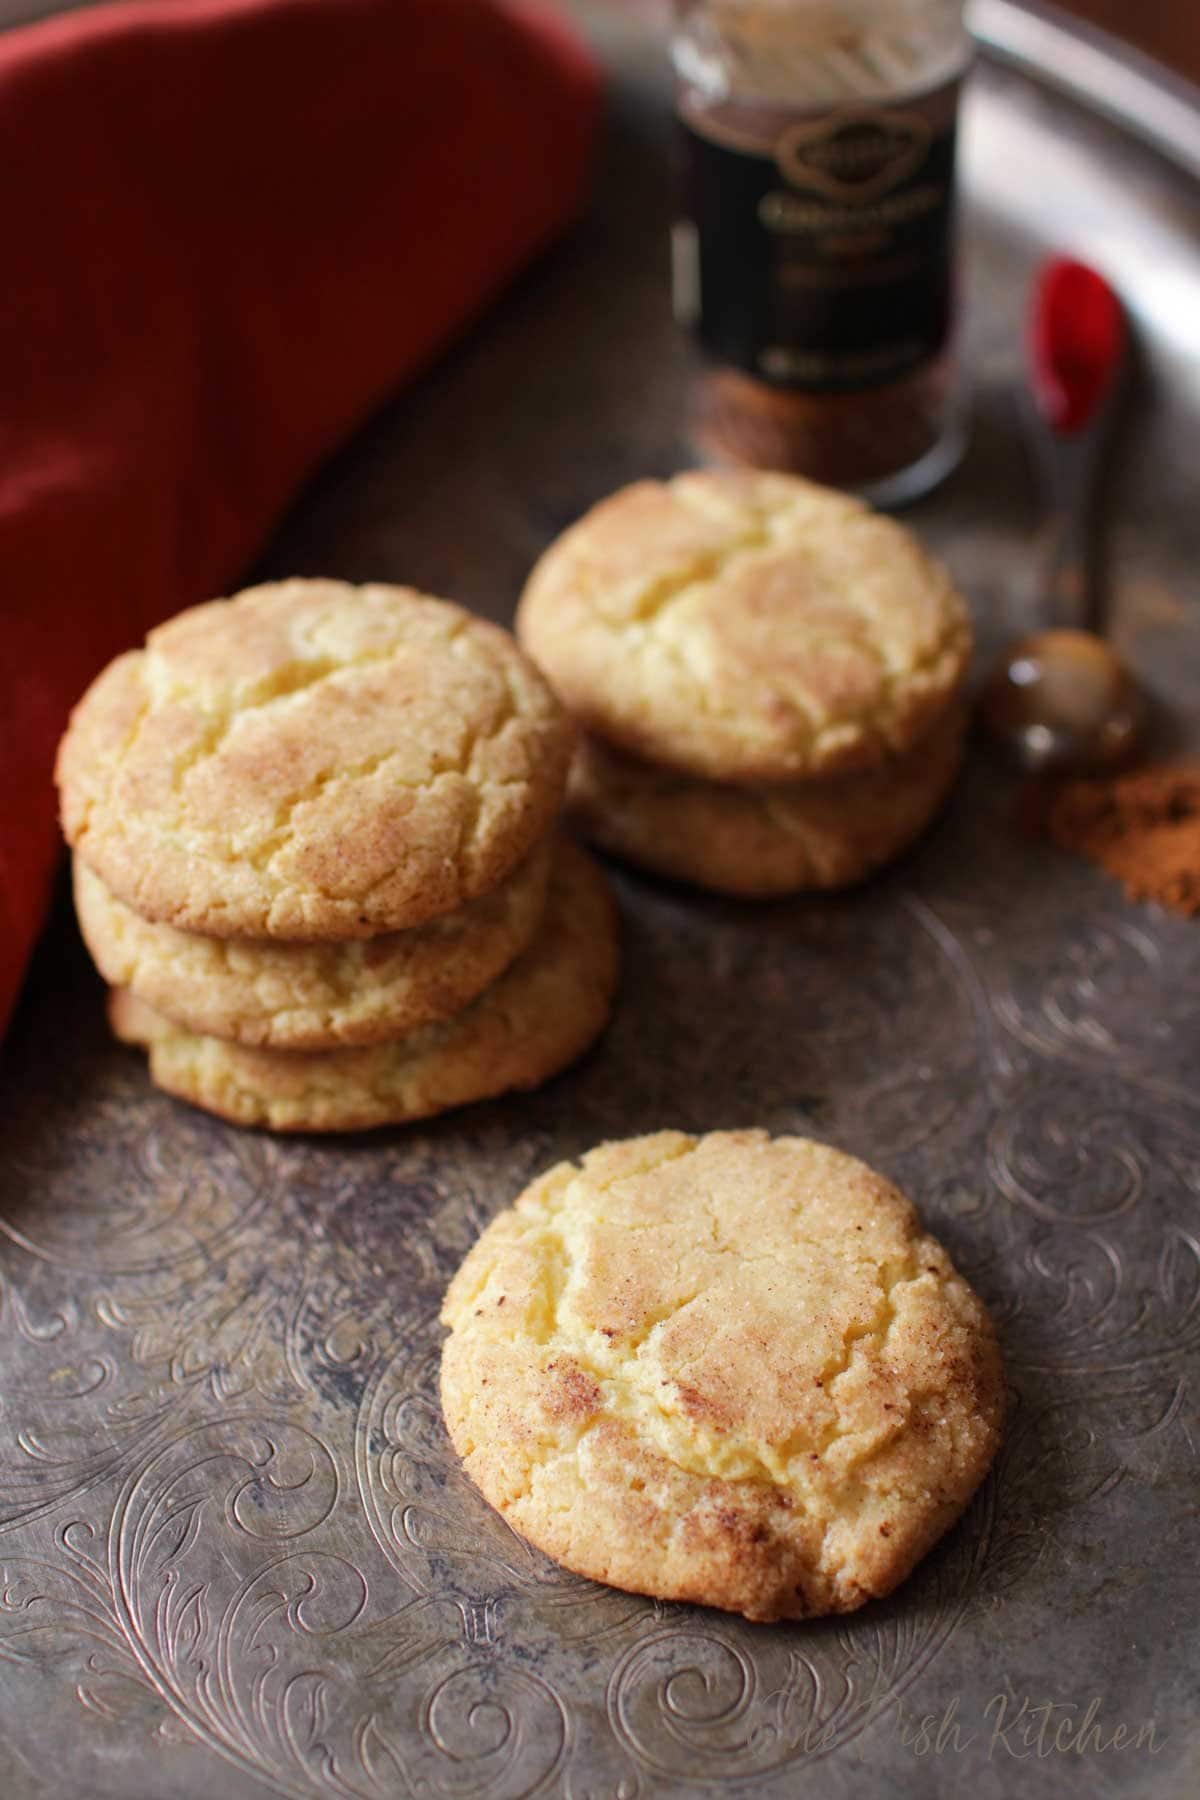 A tray of six snickerdoodle cookies